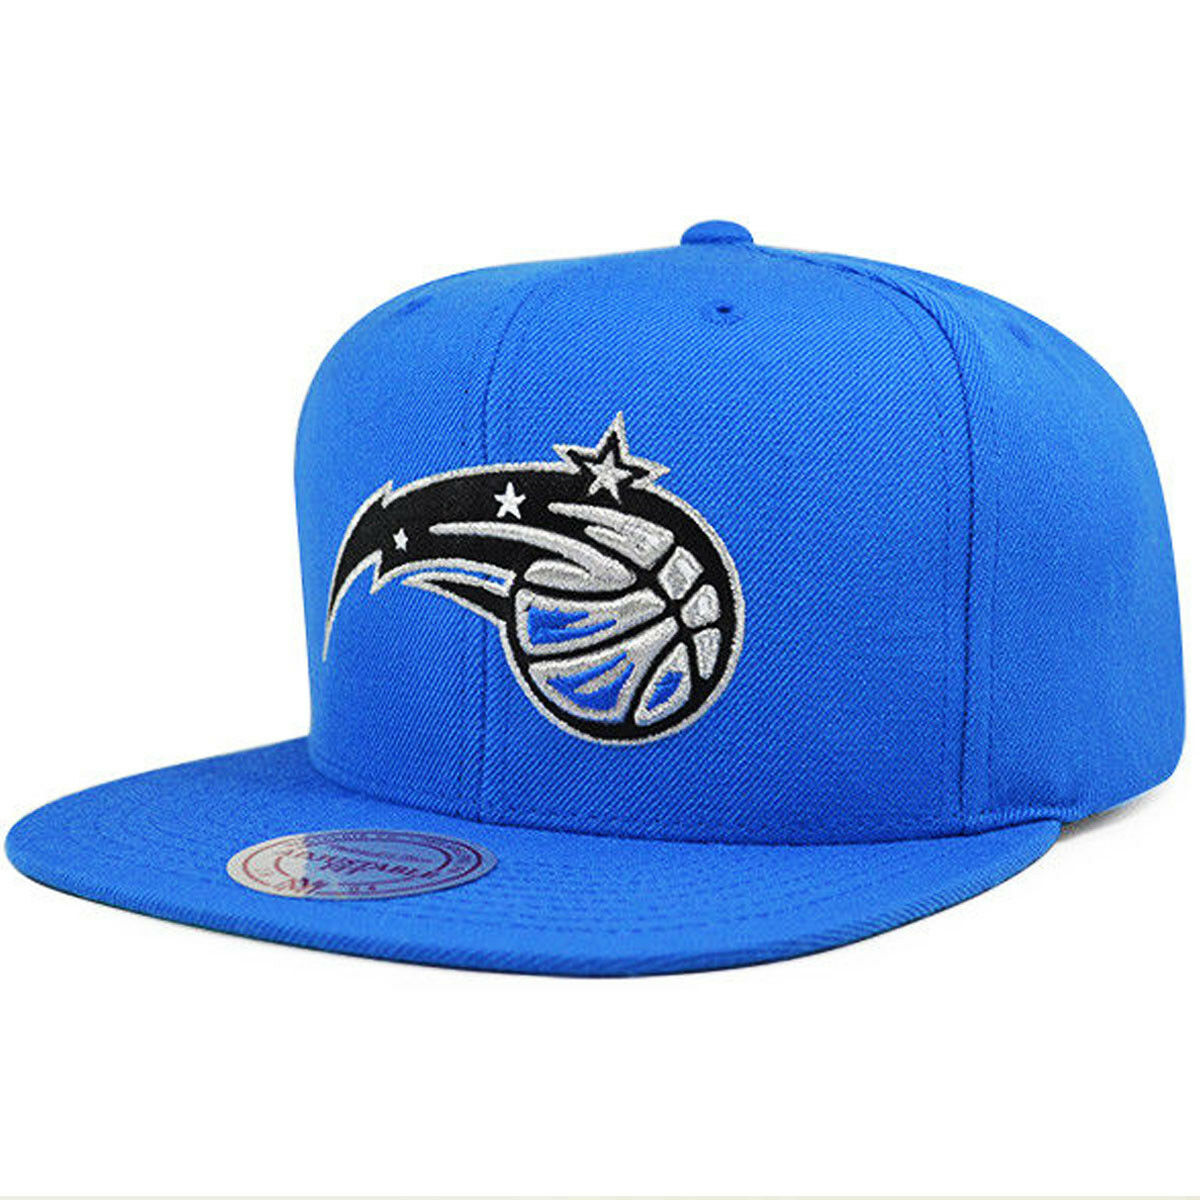 NEW AUTHENTIC MAGIC MITCHELL & NESS ORLANDO MAGIC AUTHENTIC Wool Solid Snapback NL99Z TPC 5MAGIC aea2d3